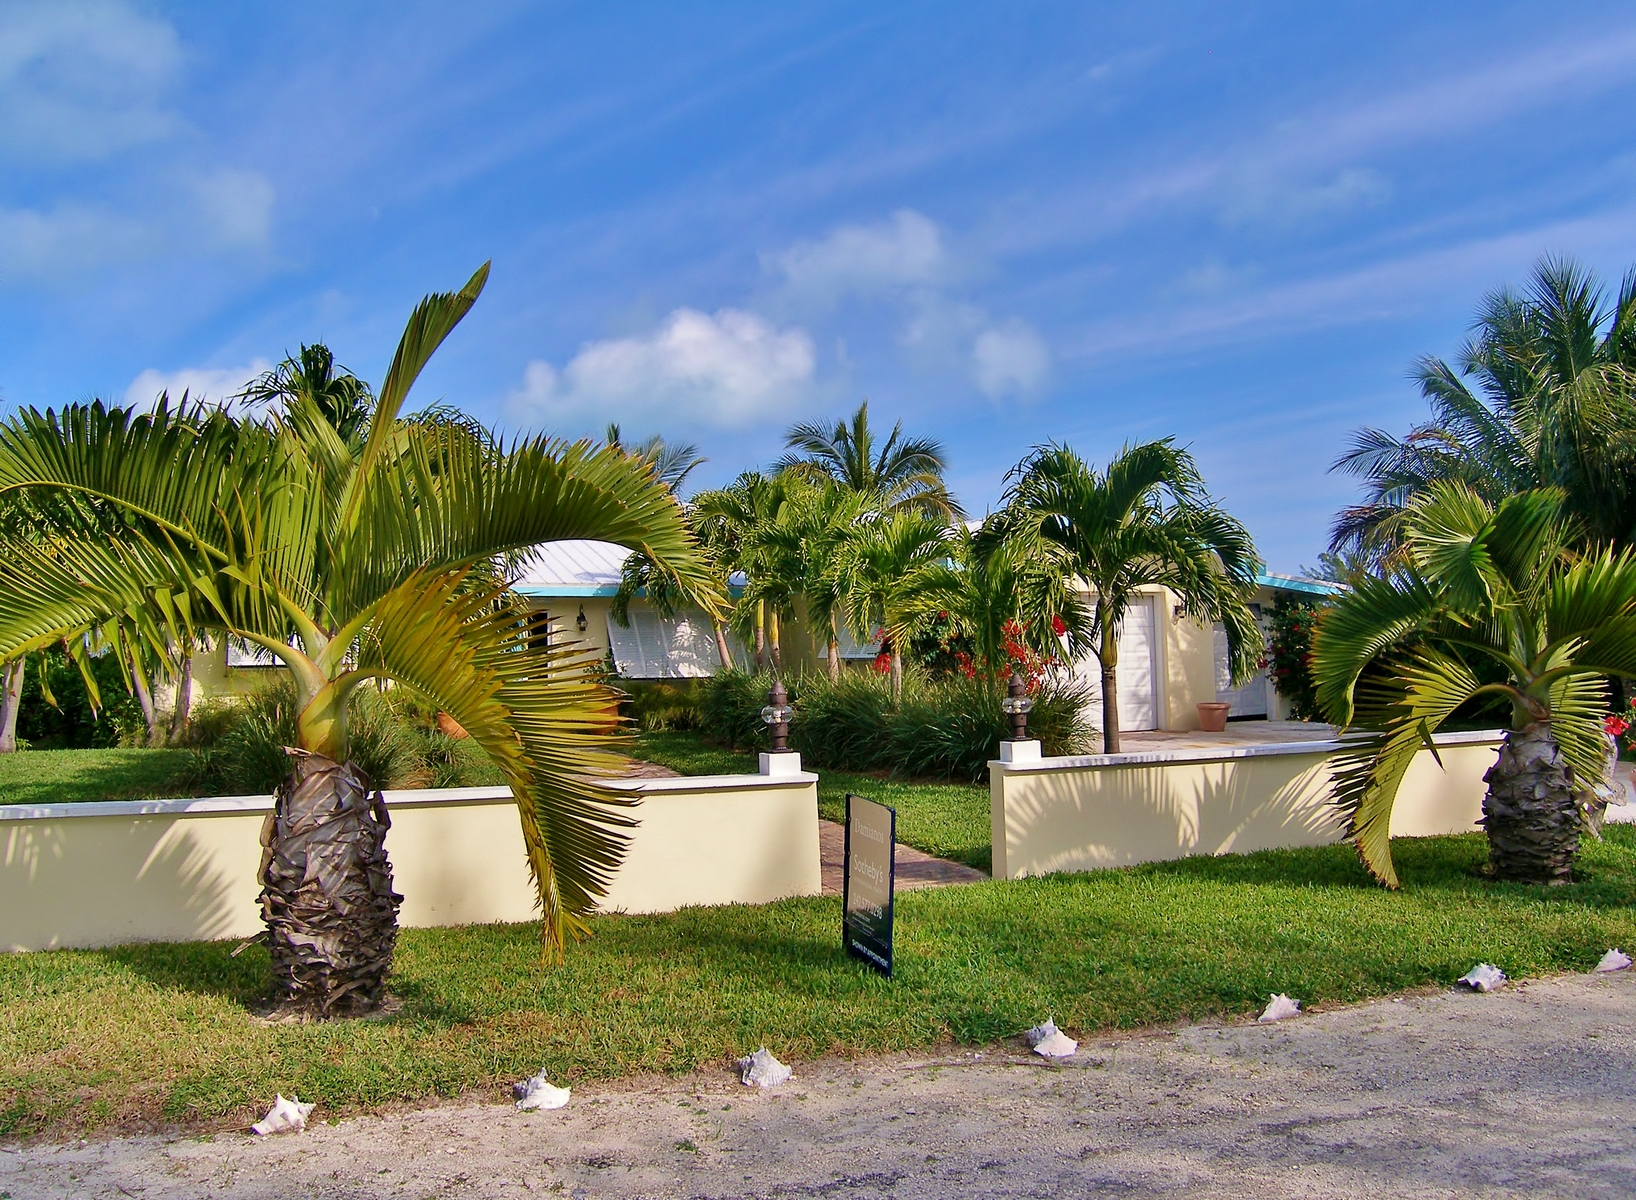 Additional photo for property listing at Yellow Fin House Brigantine Bay, Treasure Cay, Abaco Bahamas